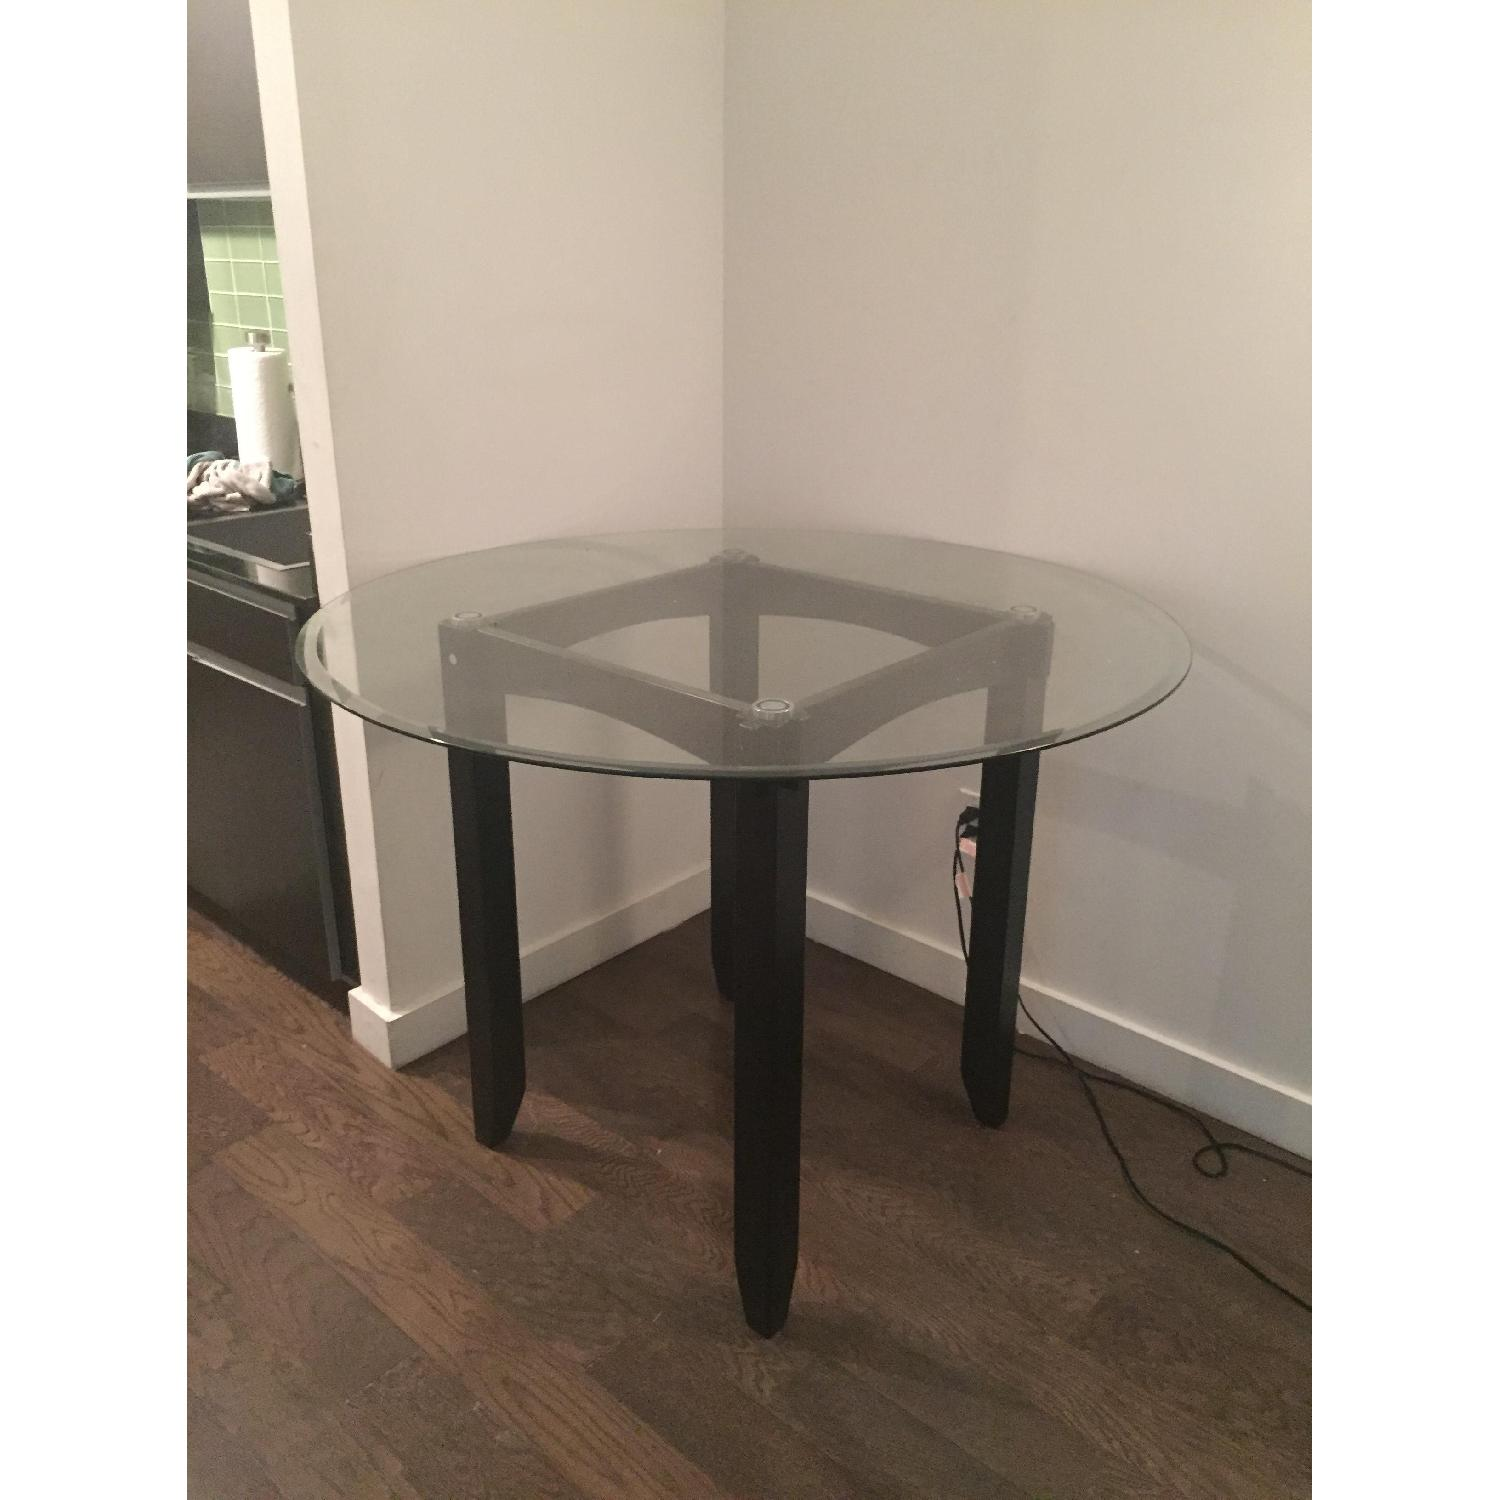 Ashley Glass Coffee Table.Ashley Glass Dark Wood Counter Height Table